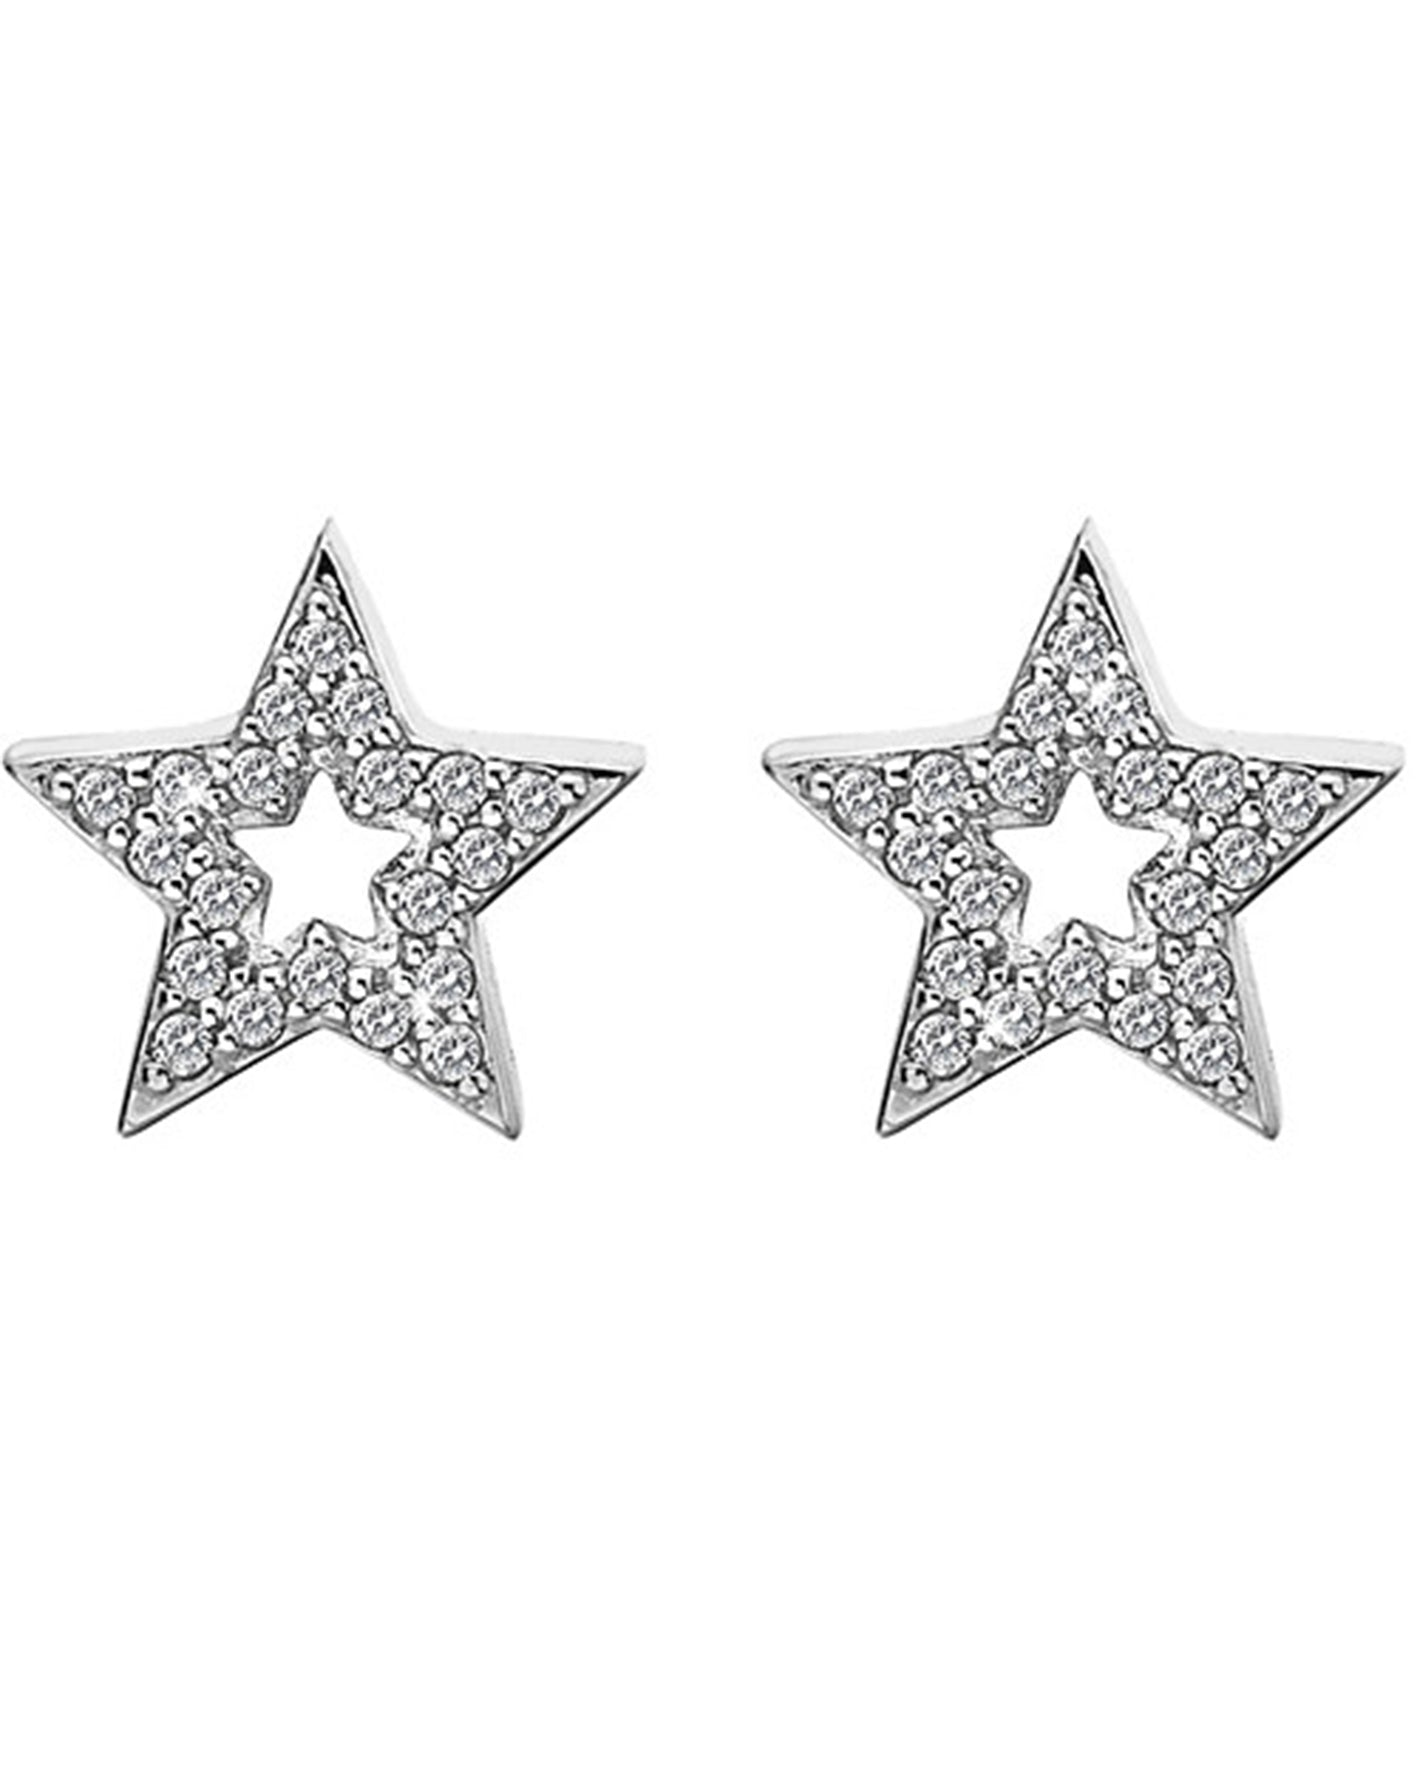 Hot Diamonds Bliss Star Silver & White Topaz Earrings